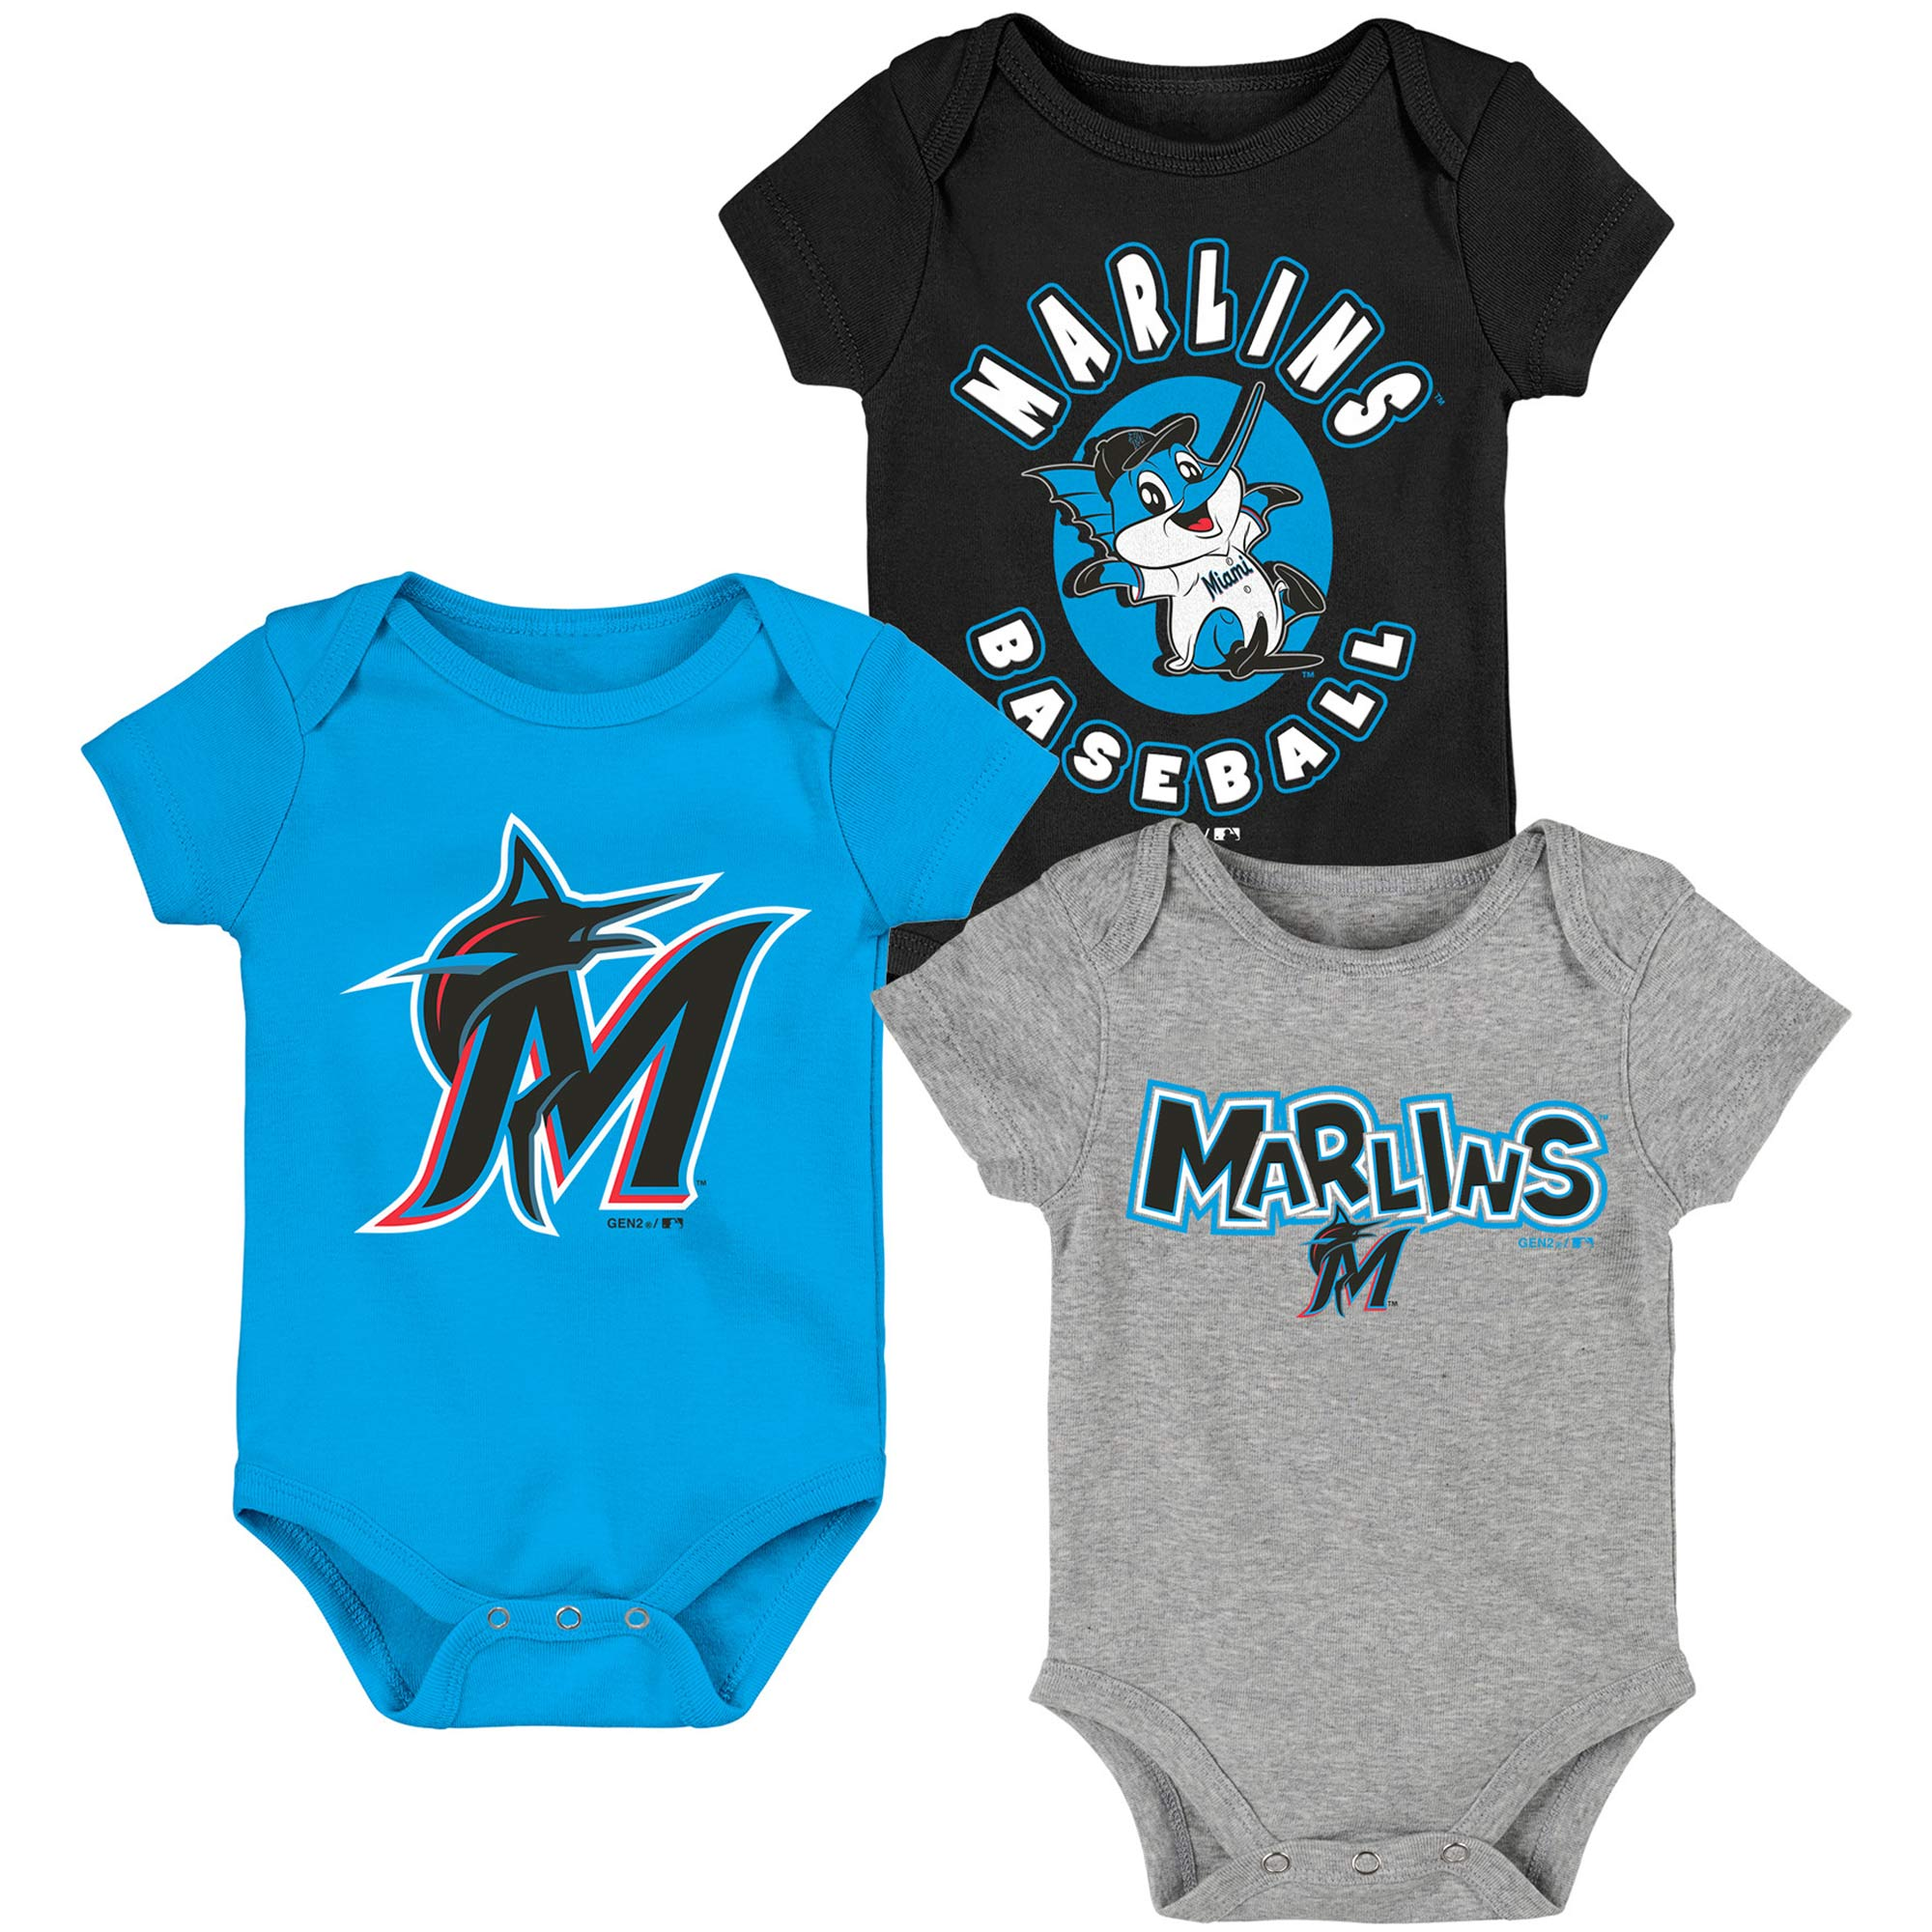 Miami Marlins Infant Everyday Fan Three-Pack Bodysuit Set - Black/Blue/Gray